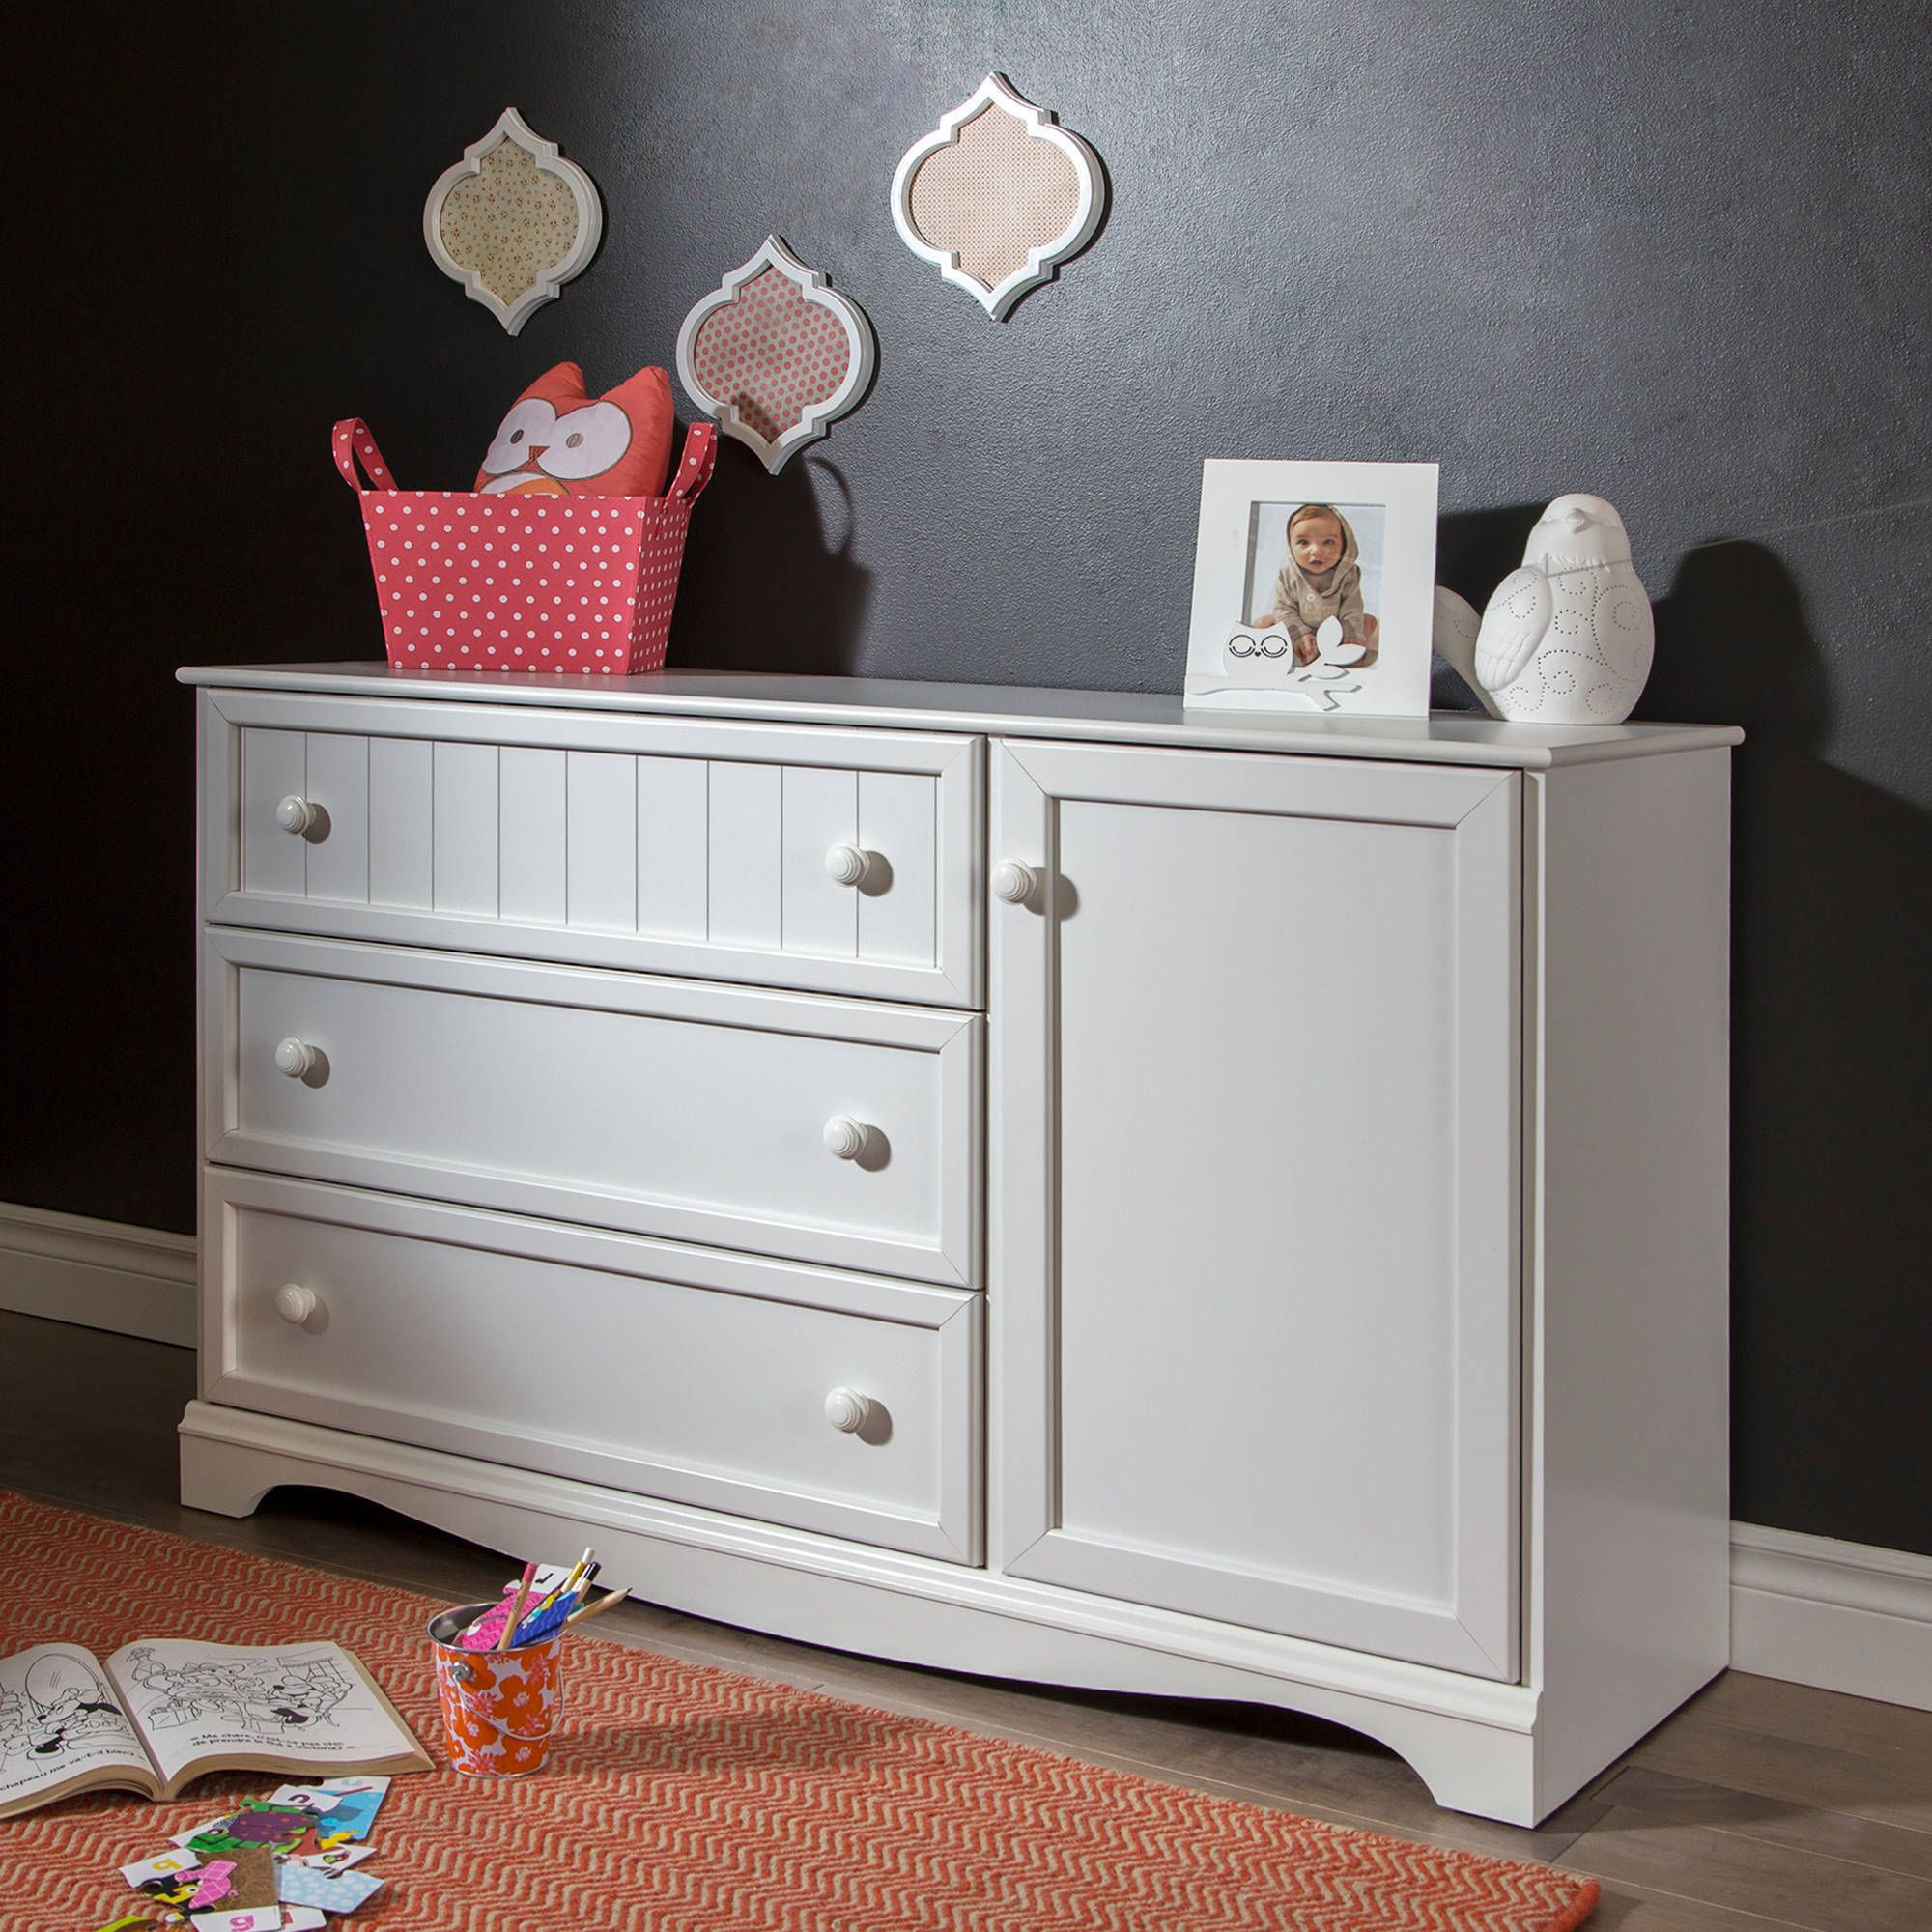 South Shore Savannah 3 Drawer Dresser With Door Multiple Finishes Walmart Com Dresser Drawers Daybed With Storage Kidsroom Decor [ 2000 x 2000 Pixel ]